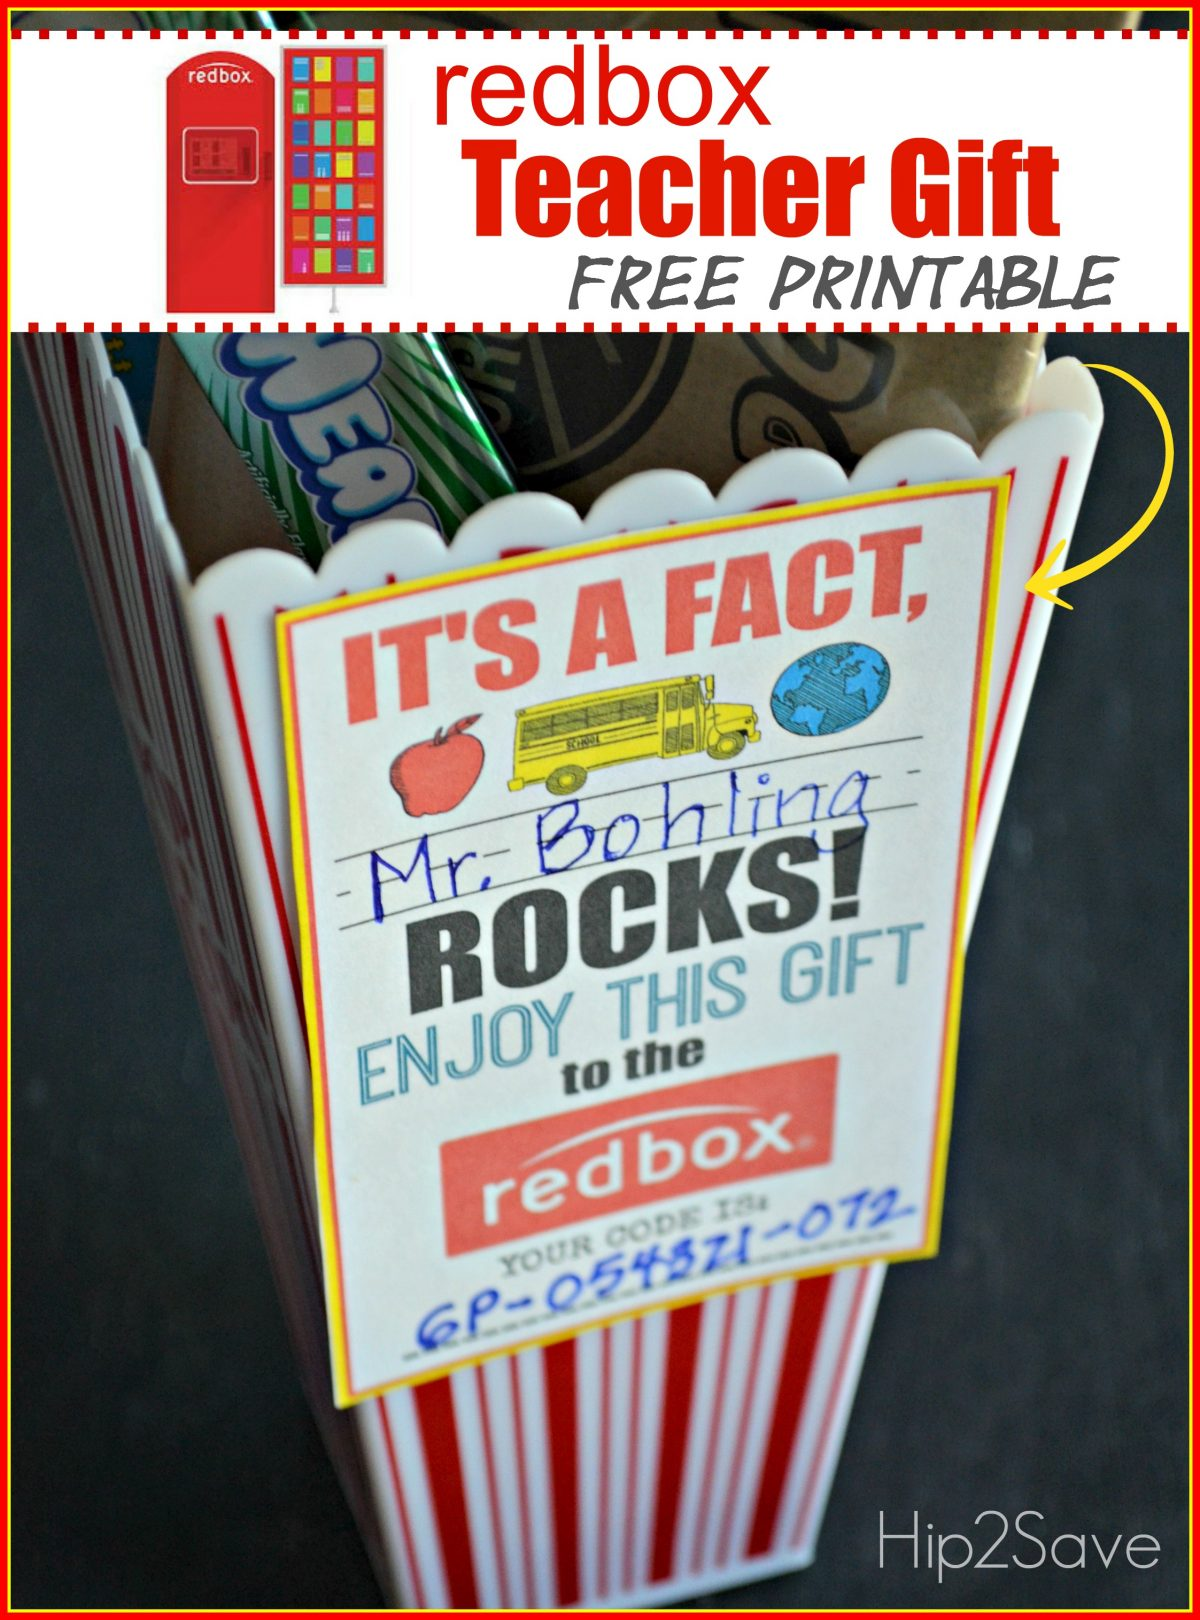 photo regarding Printable Redbox Gift Card identified as Trainer Appreciation Present Strategy: Present a Redbox Code (Cost-free